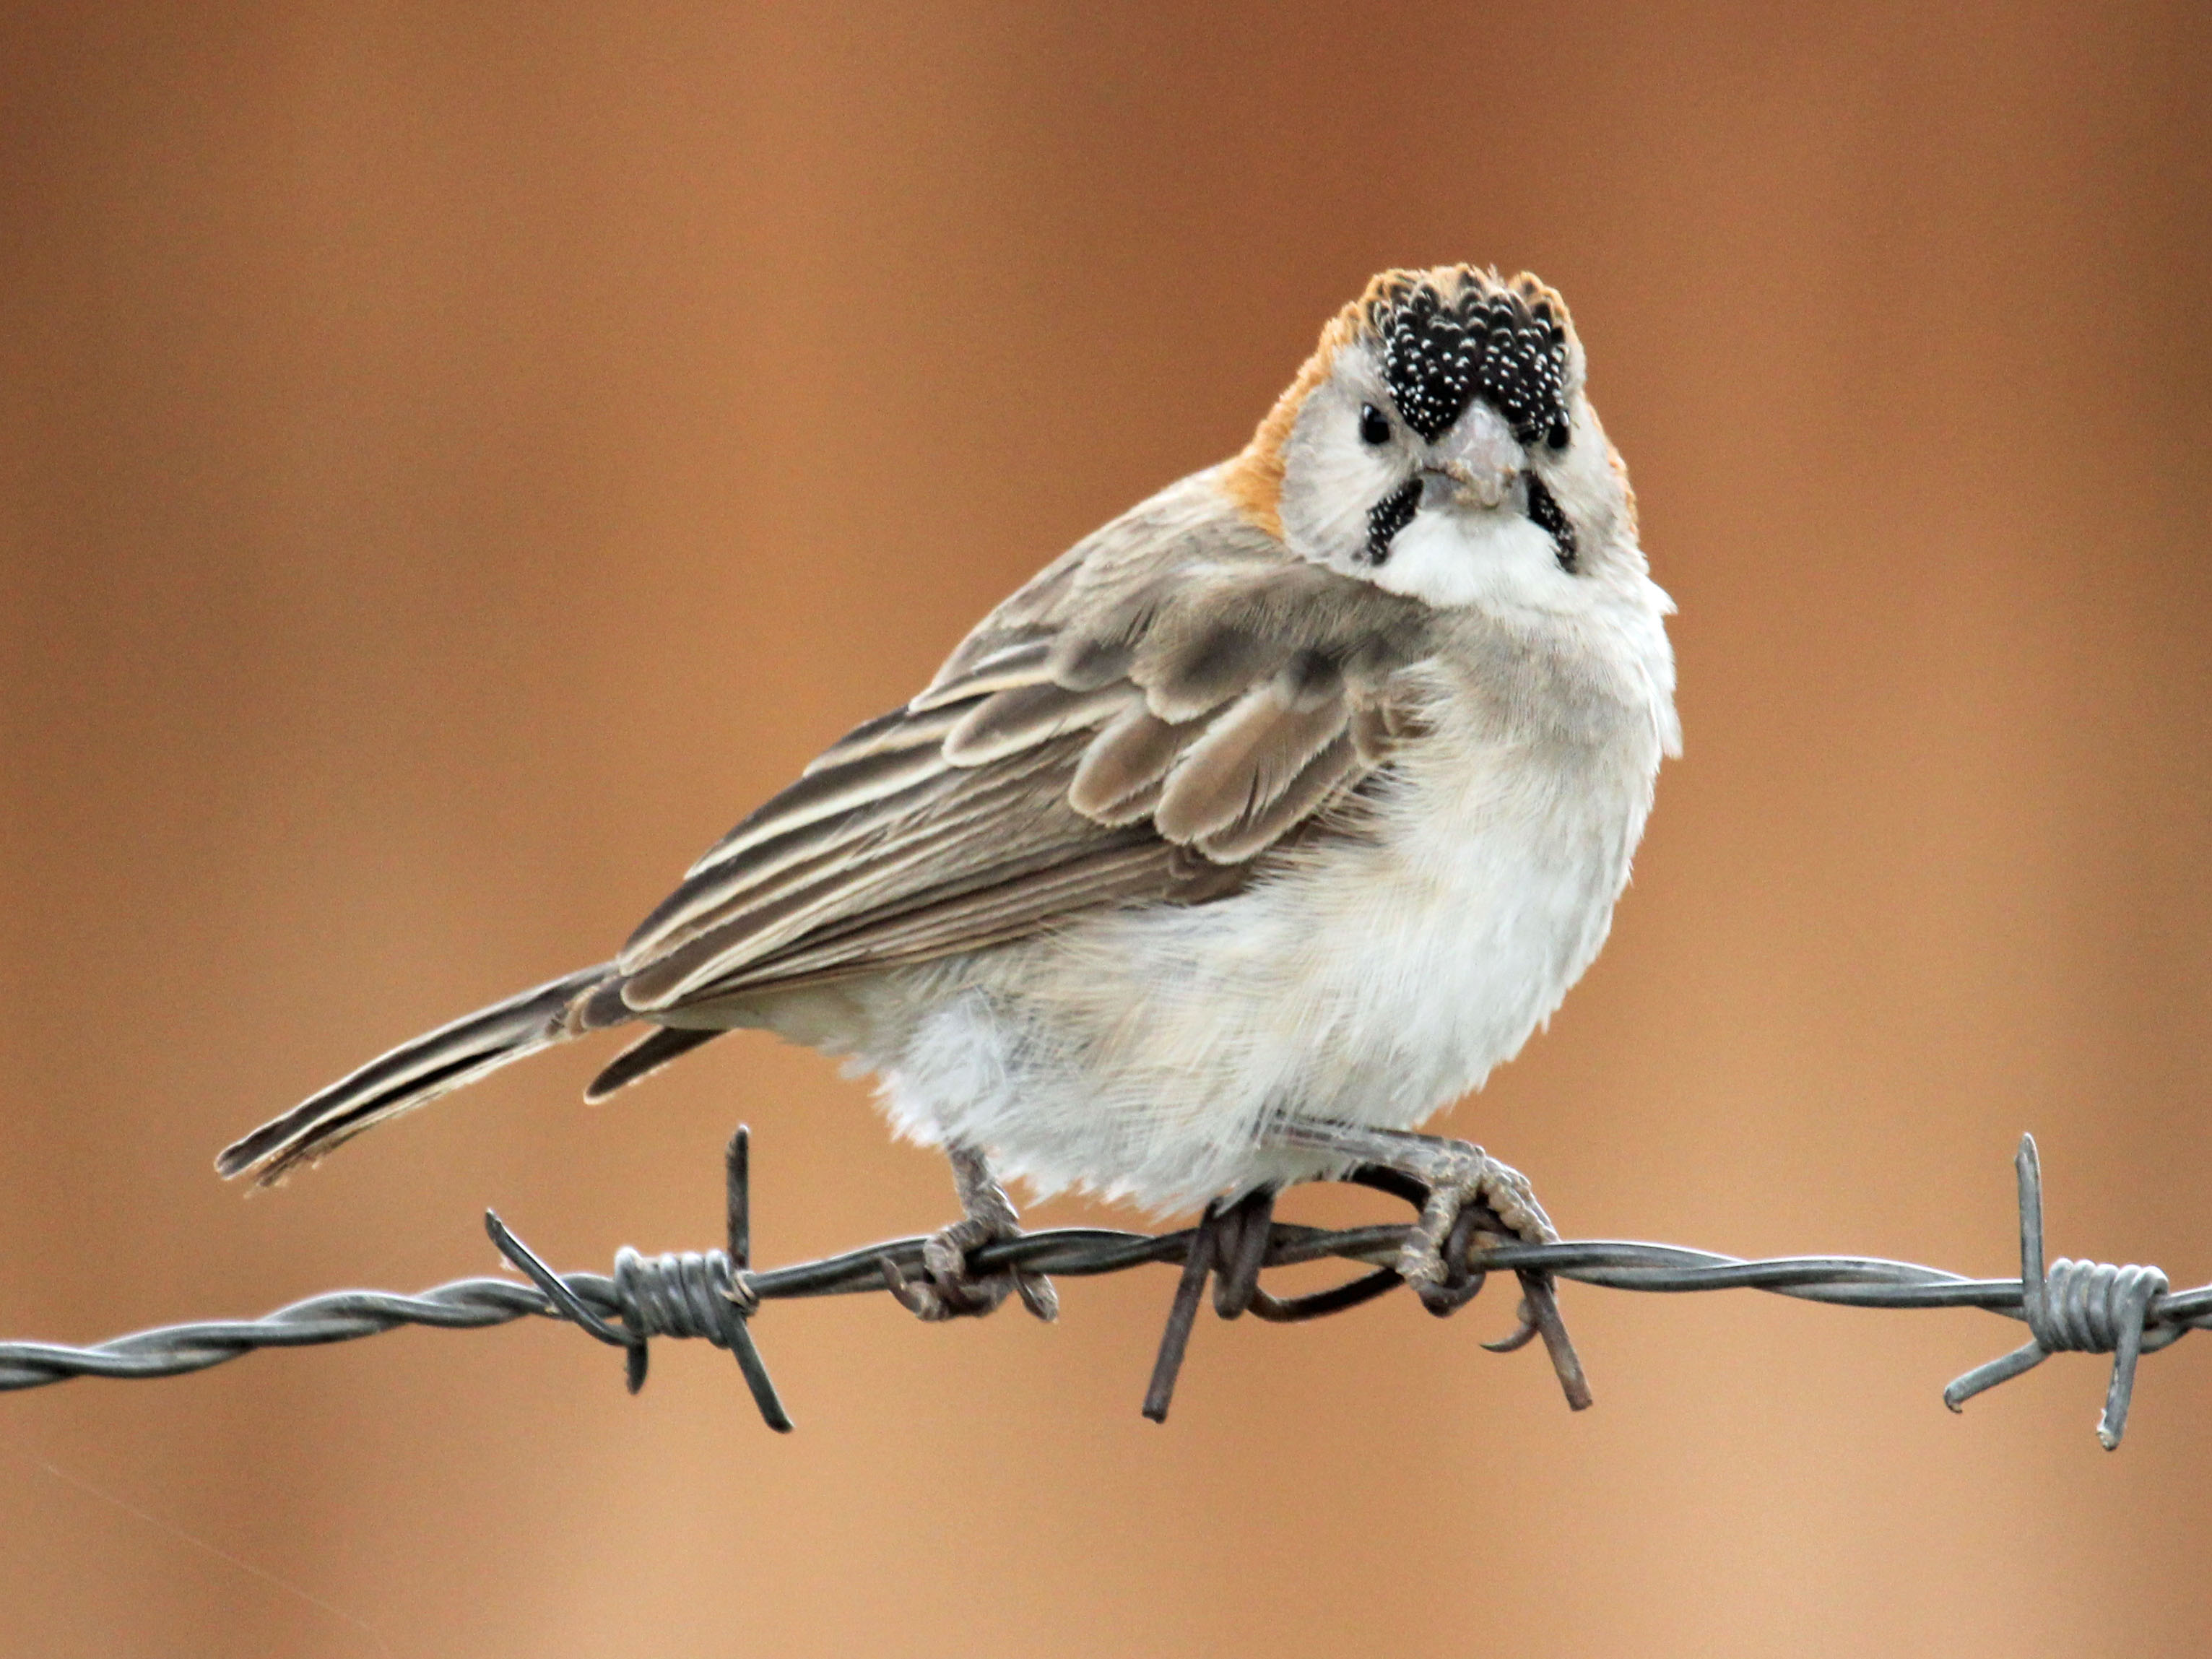 Speckle-fronted Weaver wallpaper